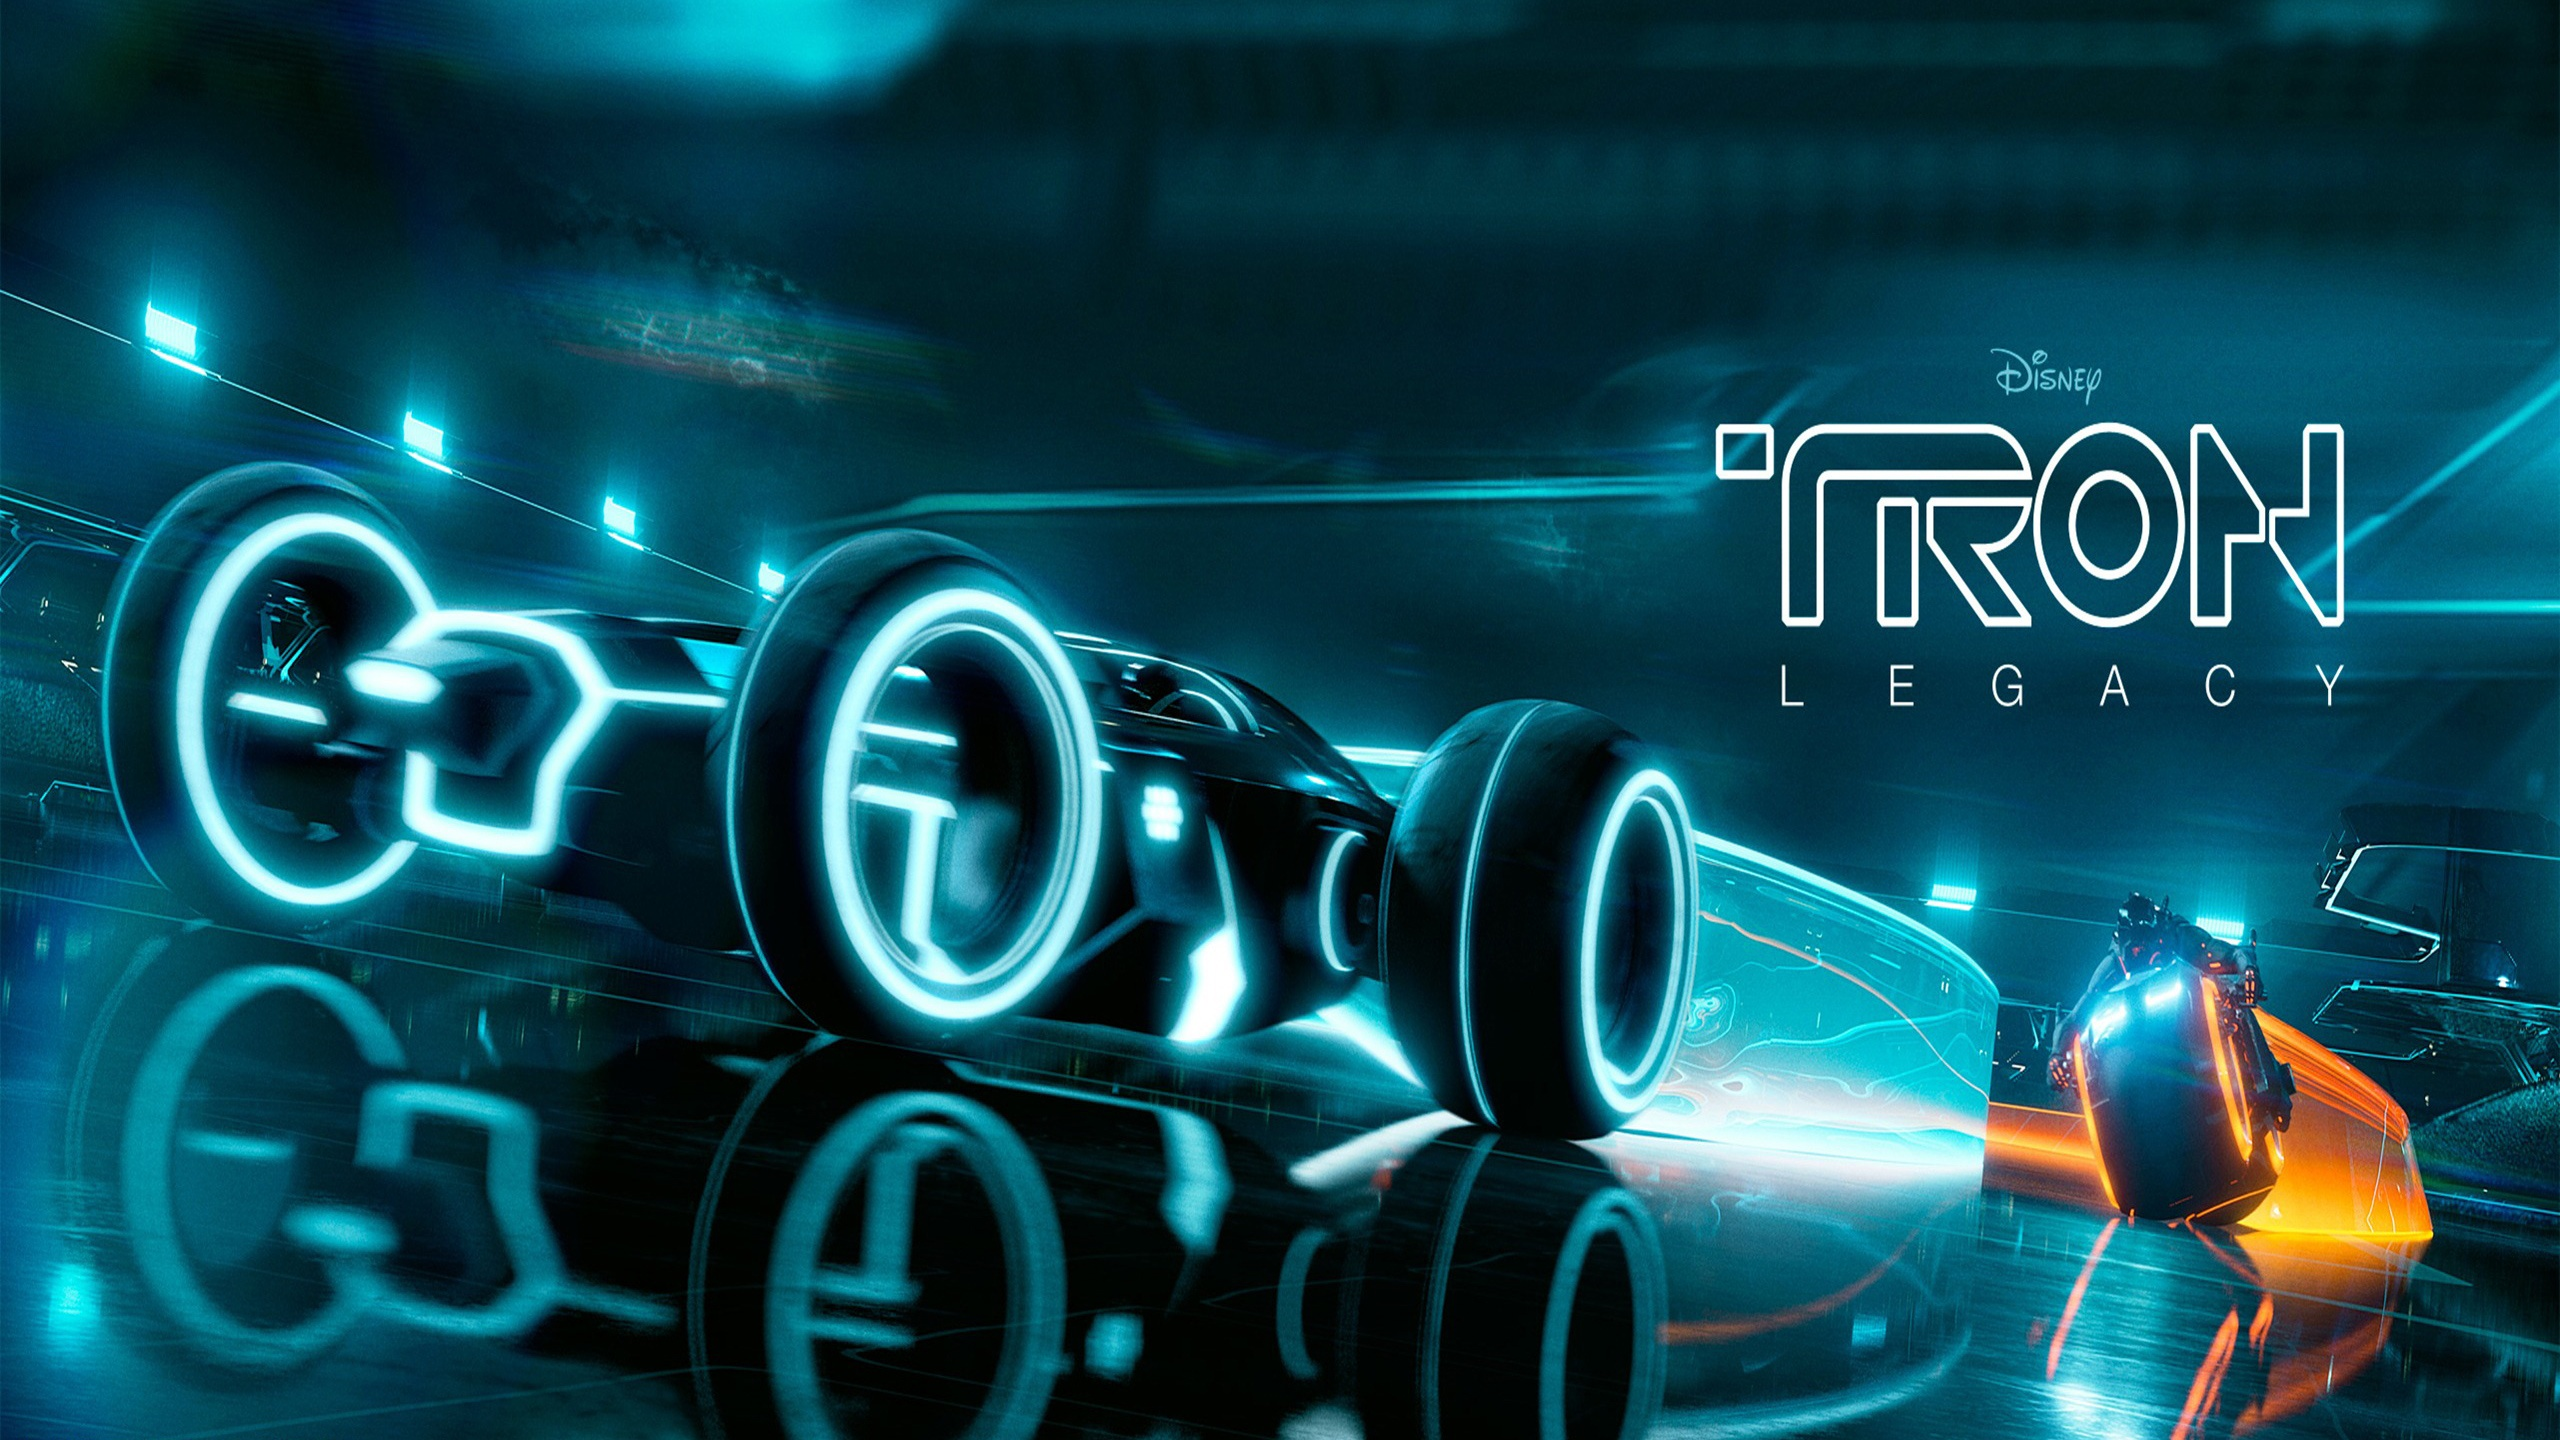 Tron Wallpaper 4K 2560x1440